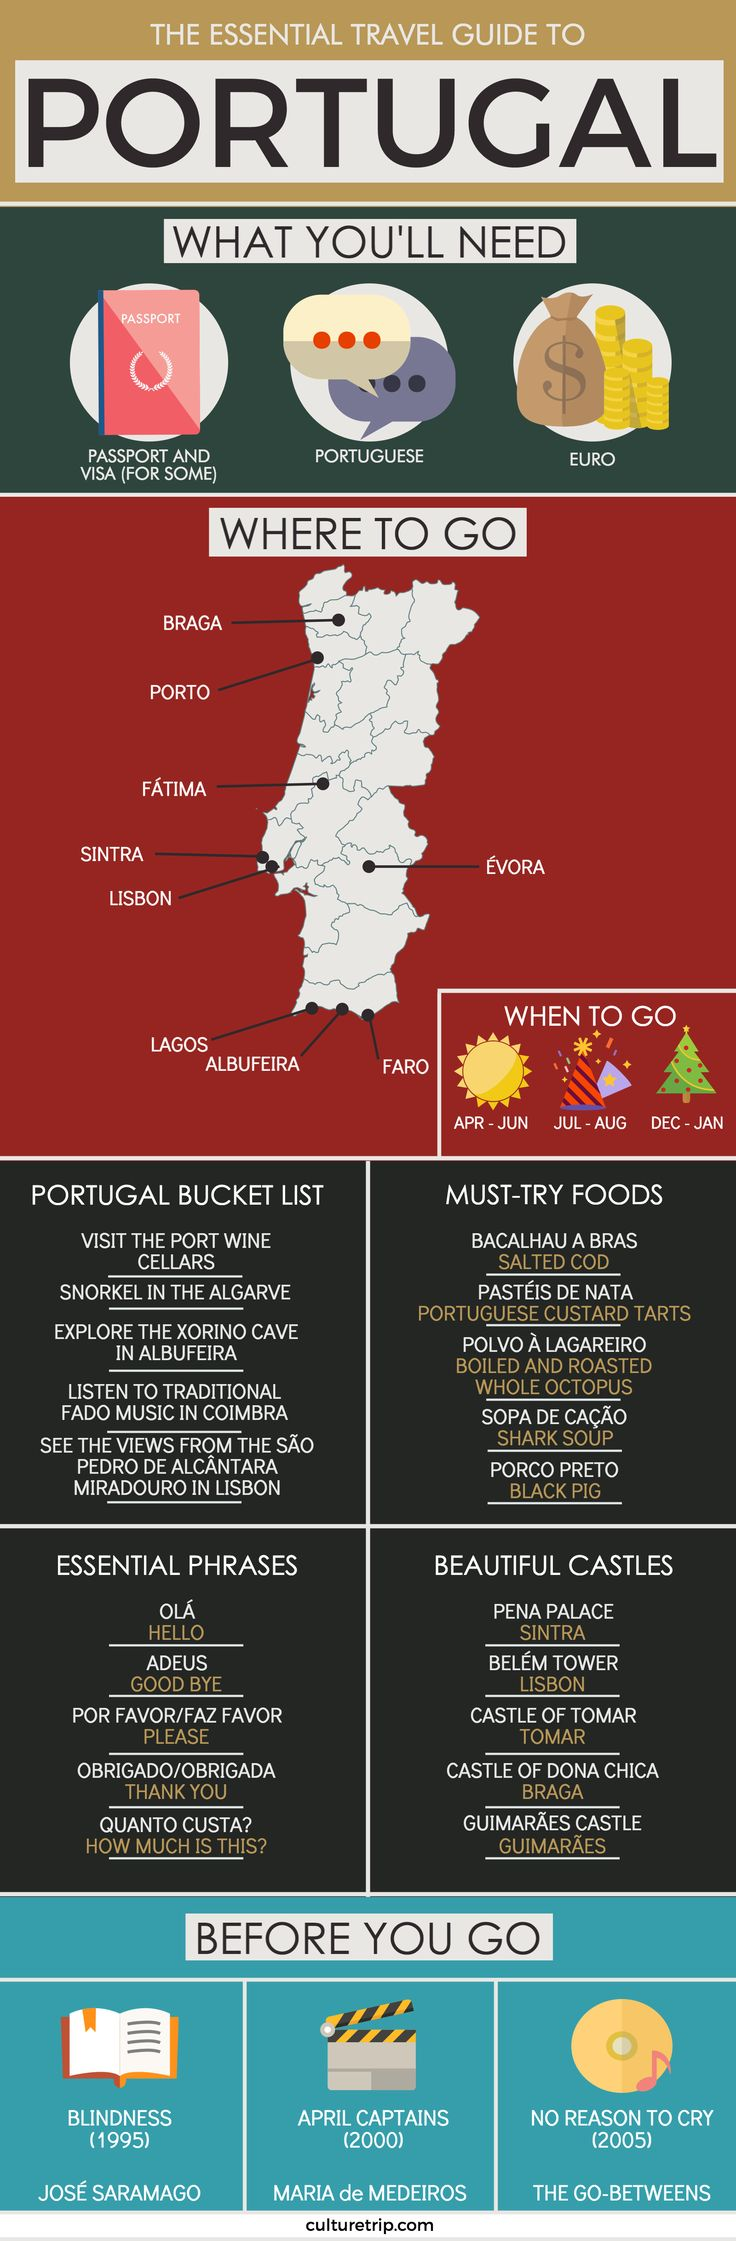 The Ultimate Guide To Portugal By The Culture Trip   RePinned by : www.powercouplelife.com   RePinned by : www.powercouplelife.com